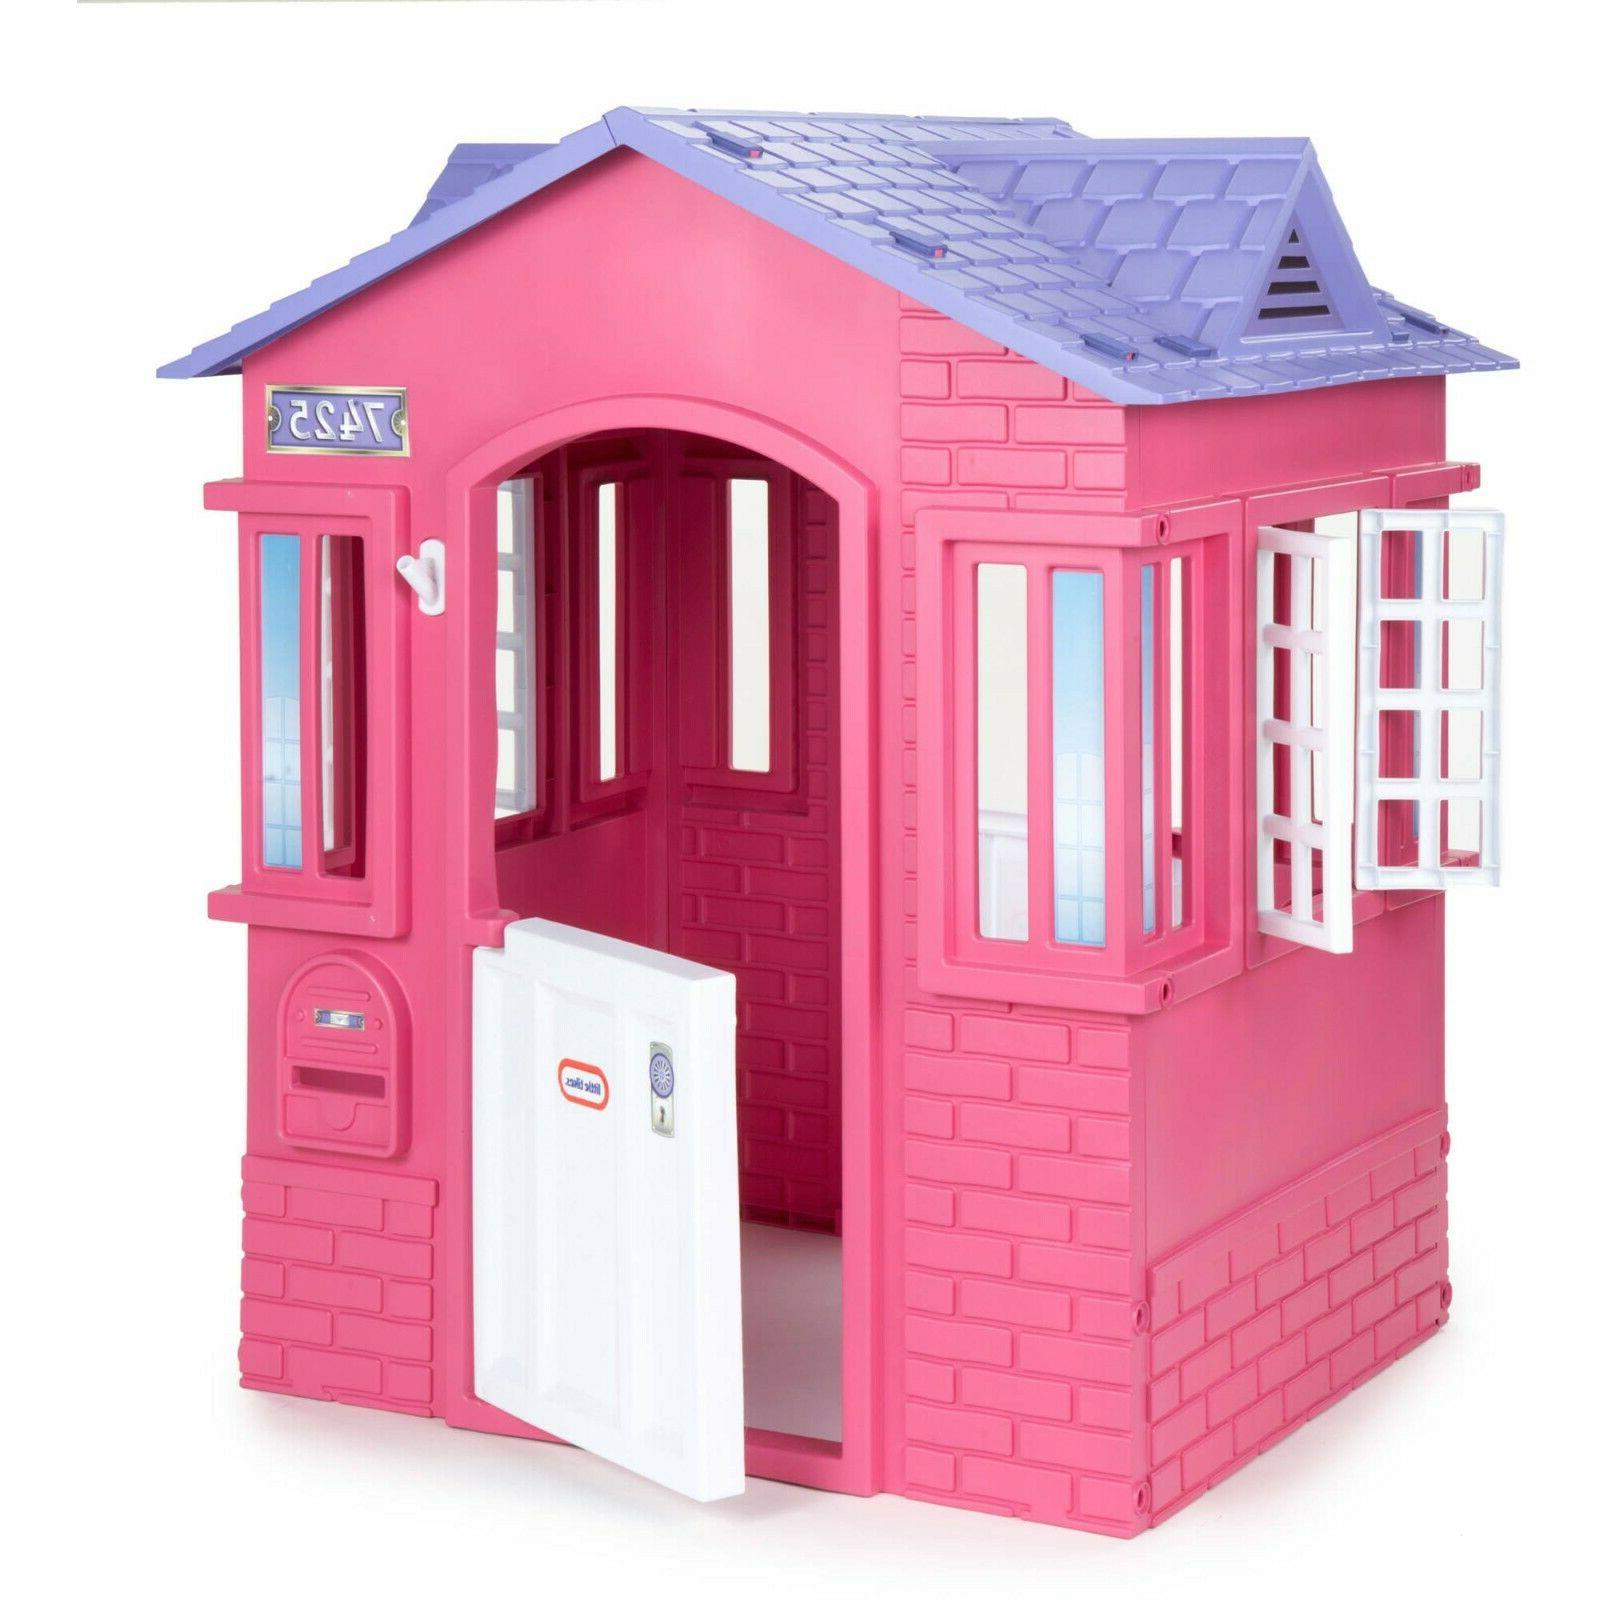 Plastic Pretend Play House Toddler Indoor Outdoor Pink Fun P